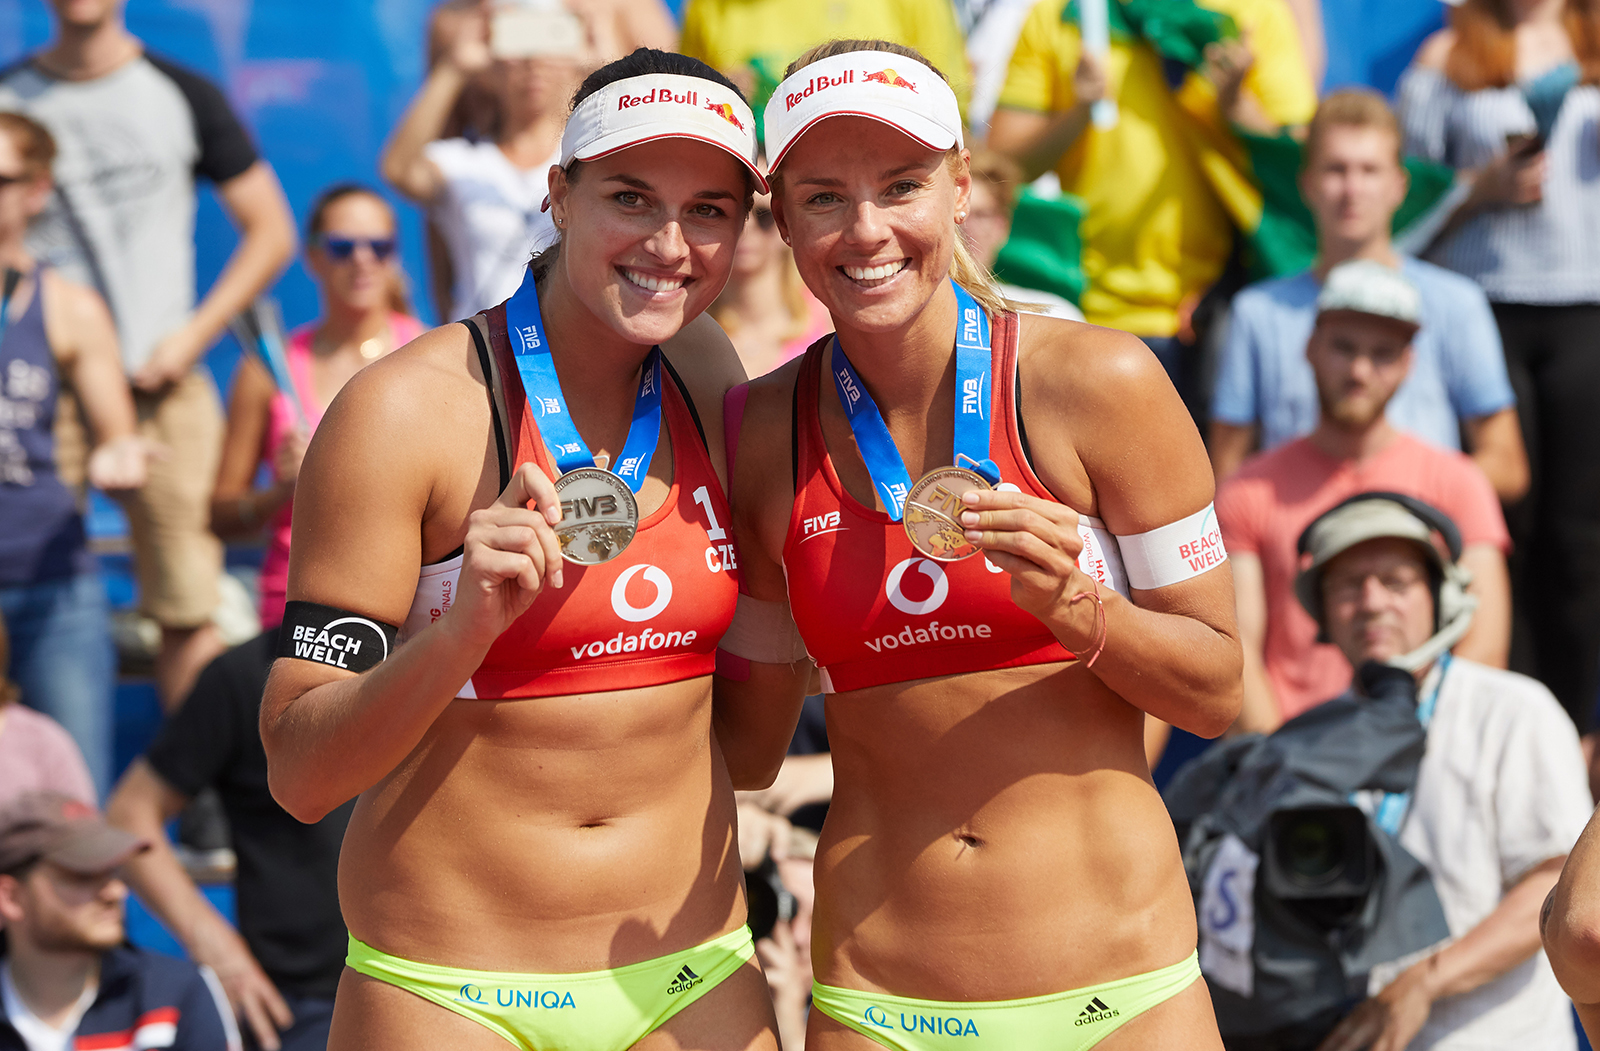 Fifth member of Czech Olympic team tests positive for Covid-19